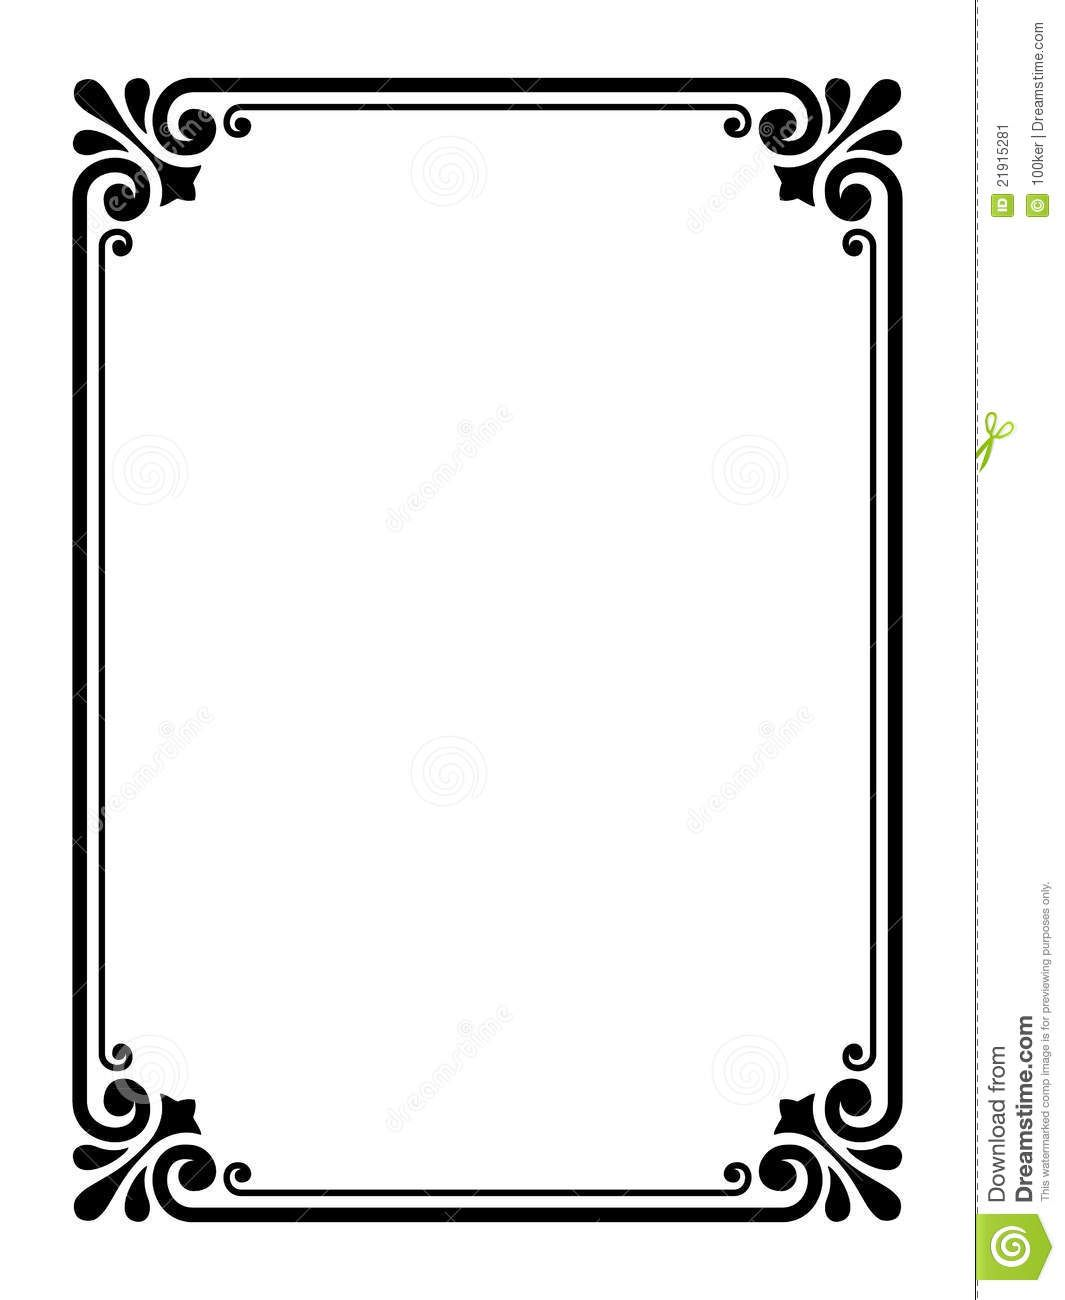 Simple Frame Clipart.